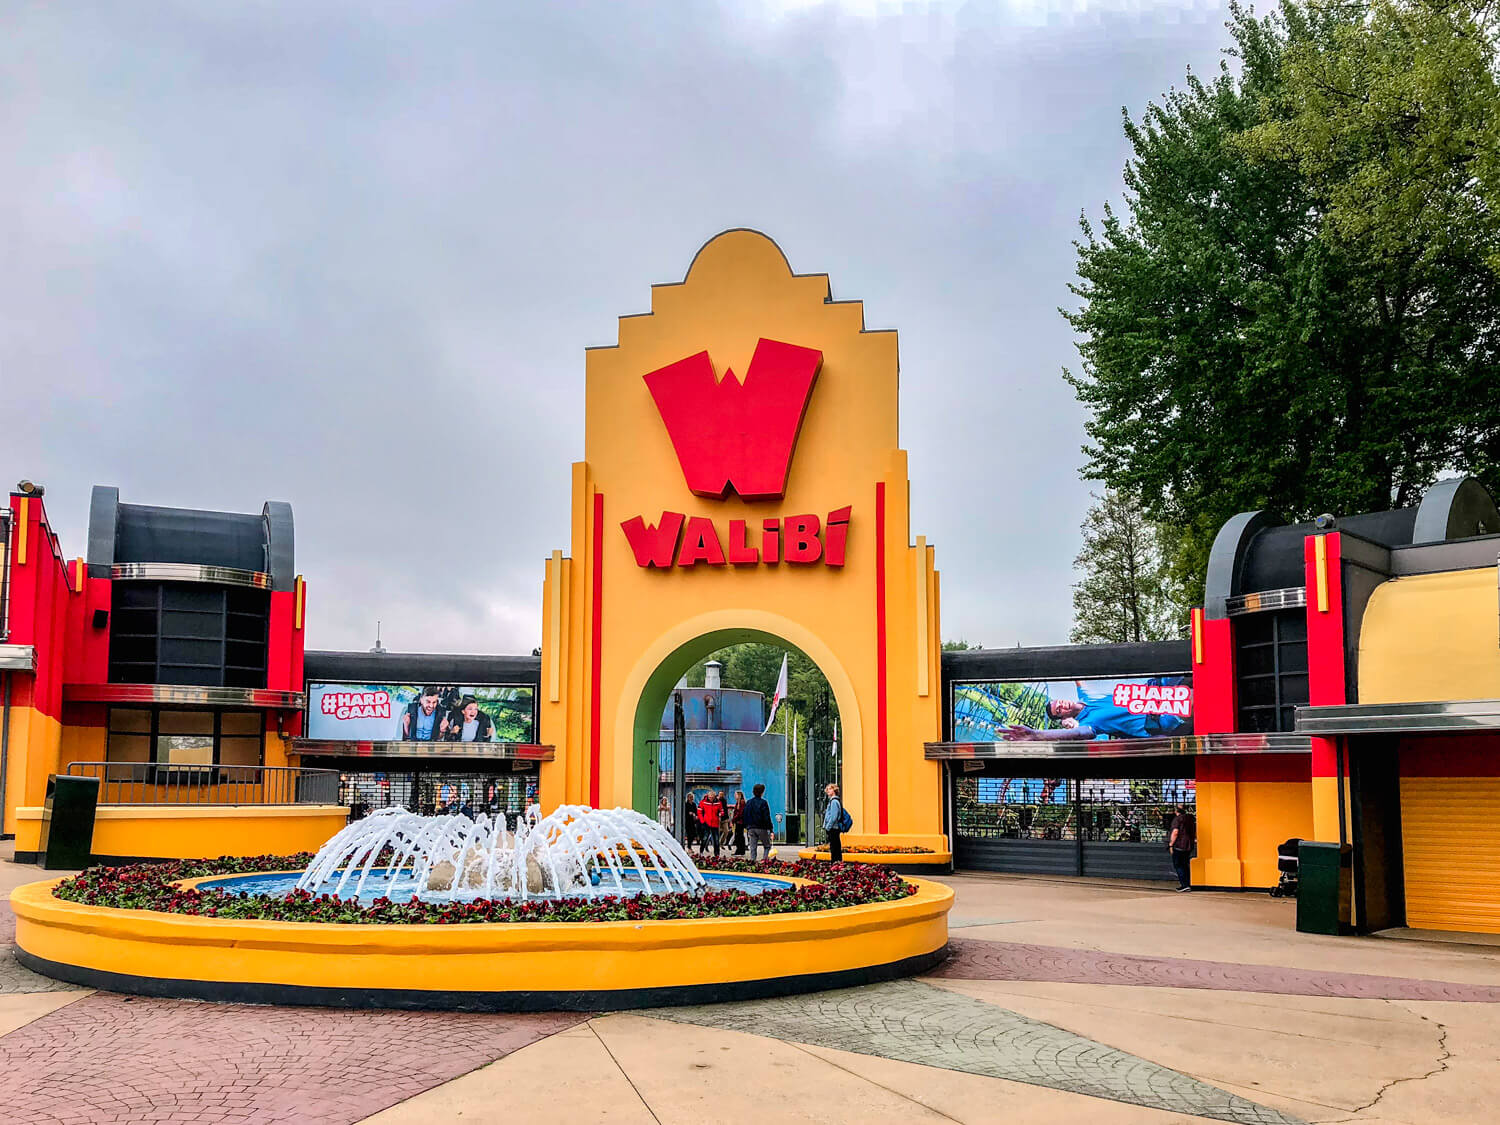 walibi holland entree main street pays-bas parc attractions